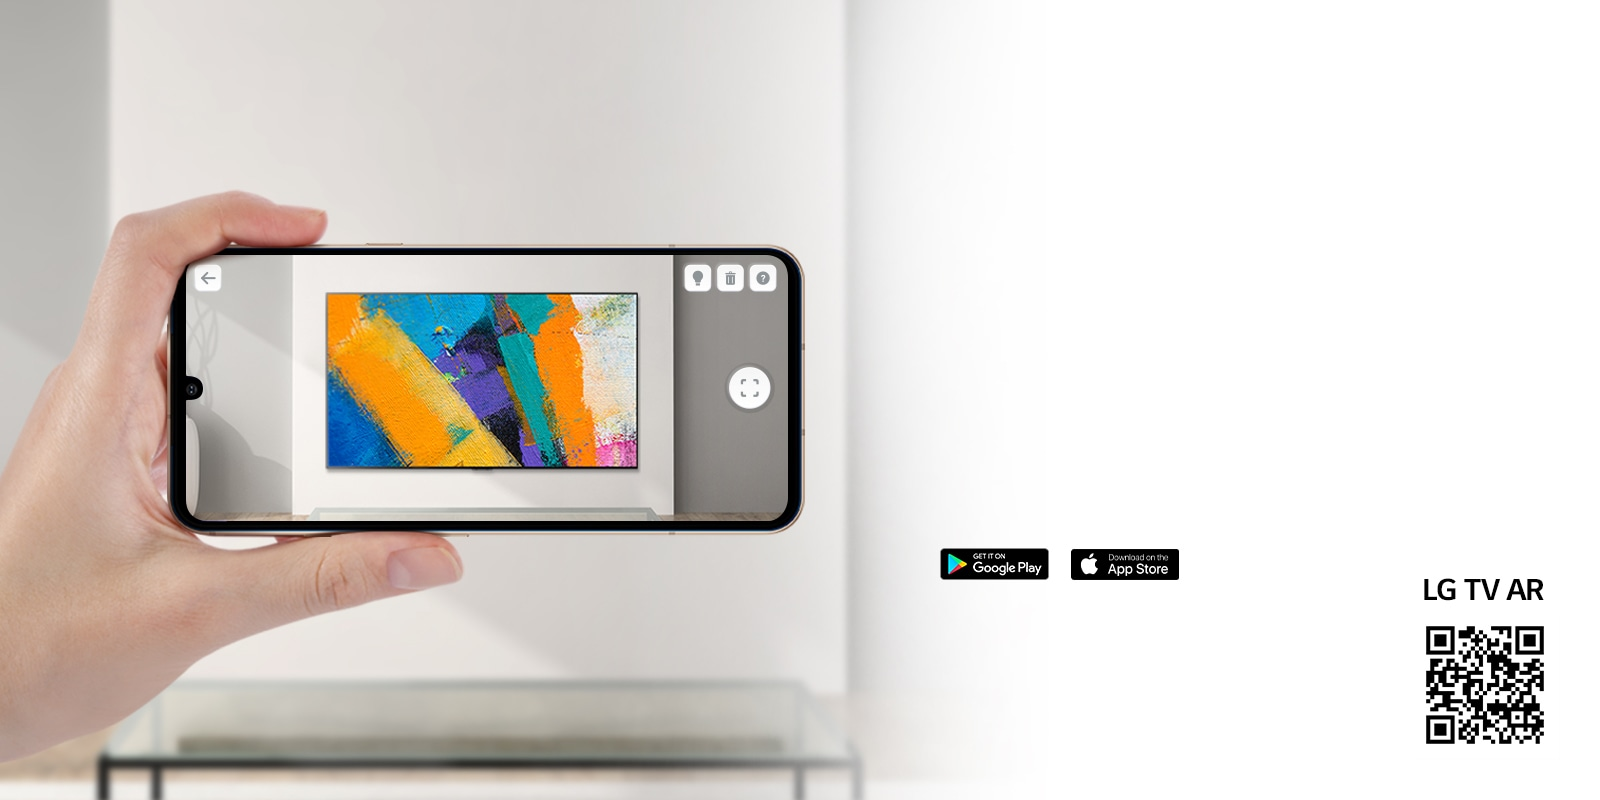 A person using LG TV AR app on a phone and a QR code which links to LG TV AR(http://www.lgtvism.com/lgtvar)